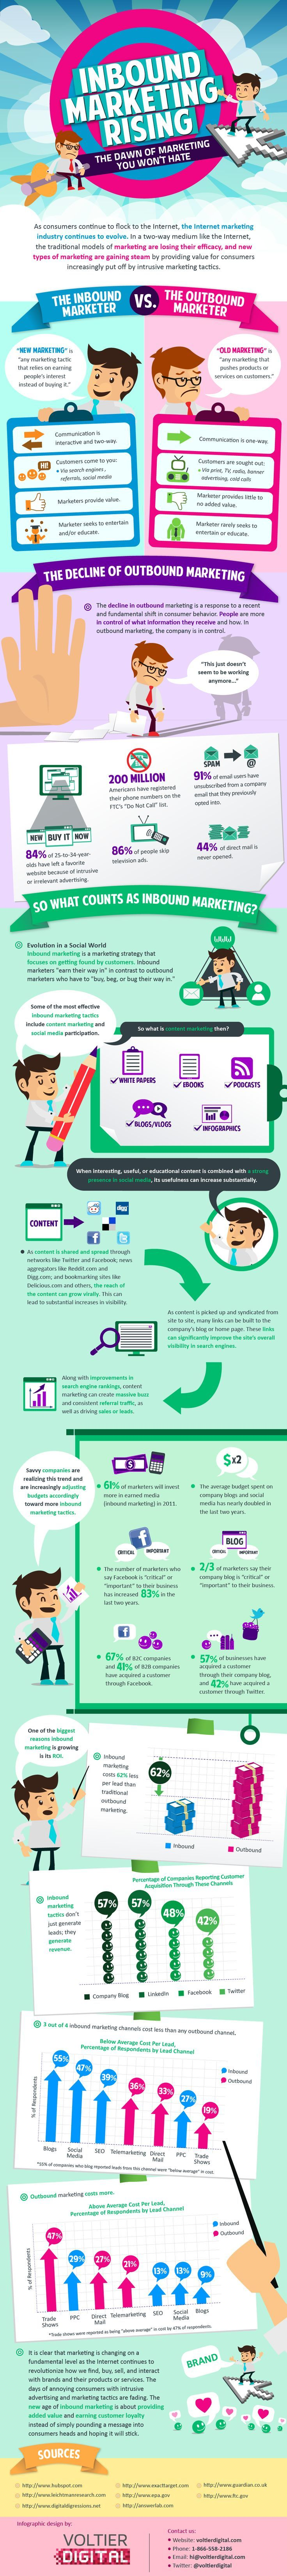 Great infographic that explains the way marketing is conducted today vs. the way marketing used to be conducted.